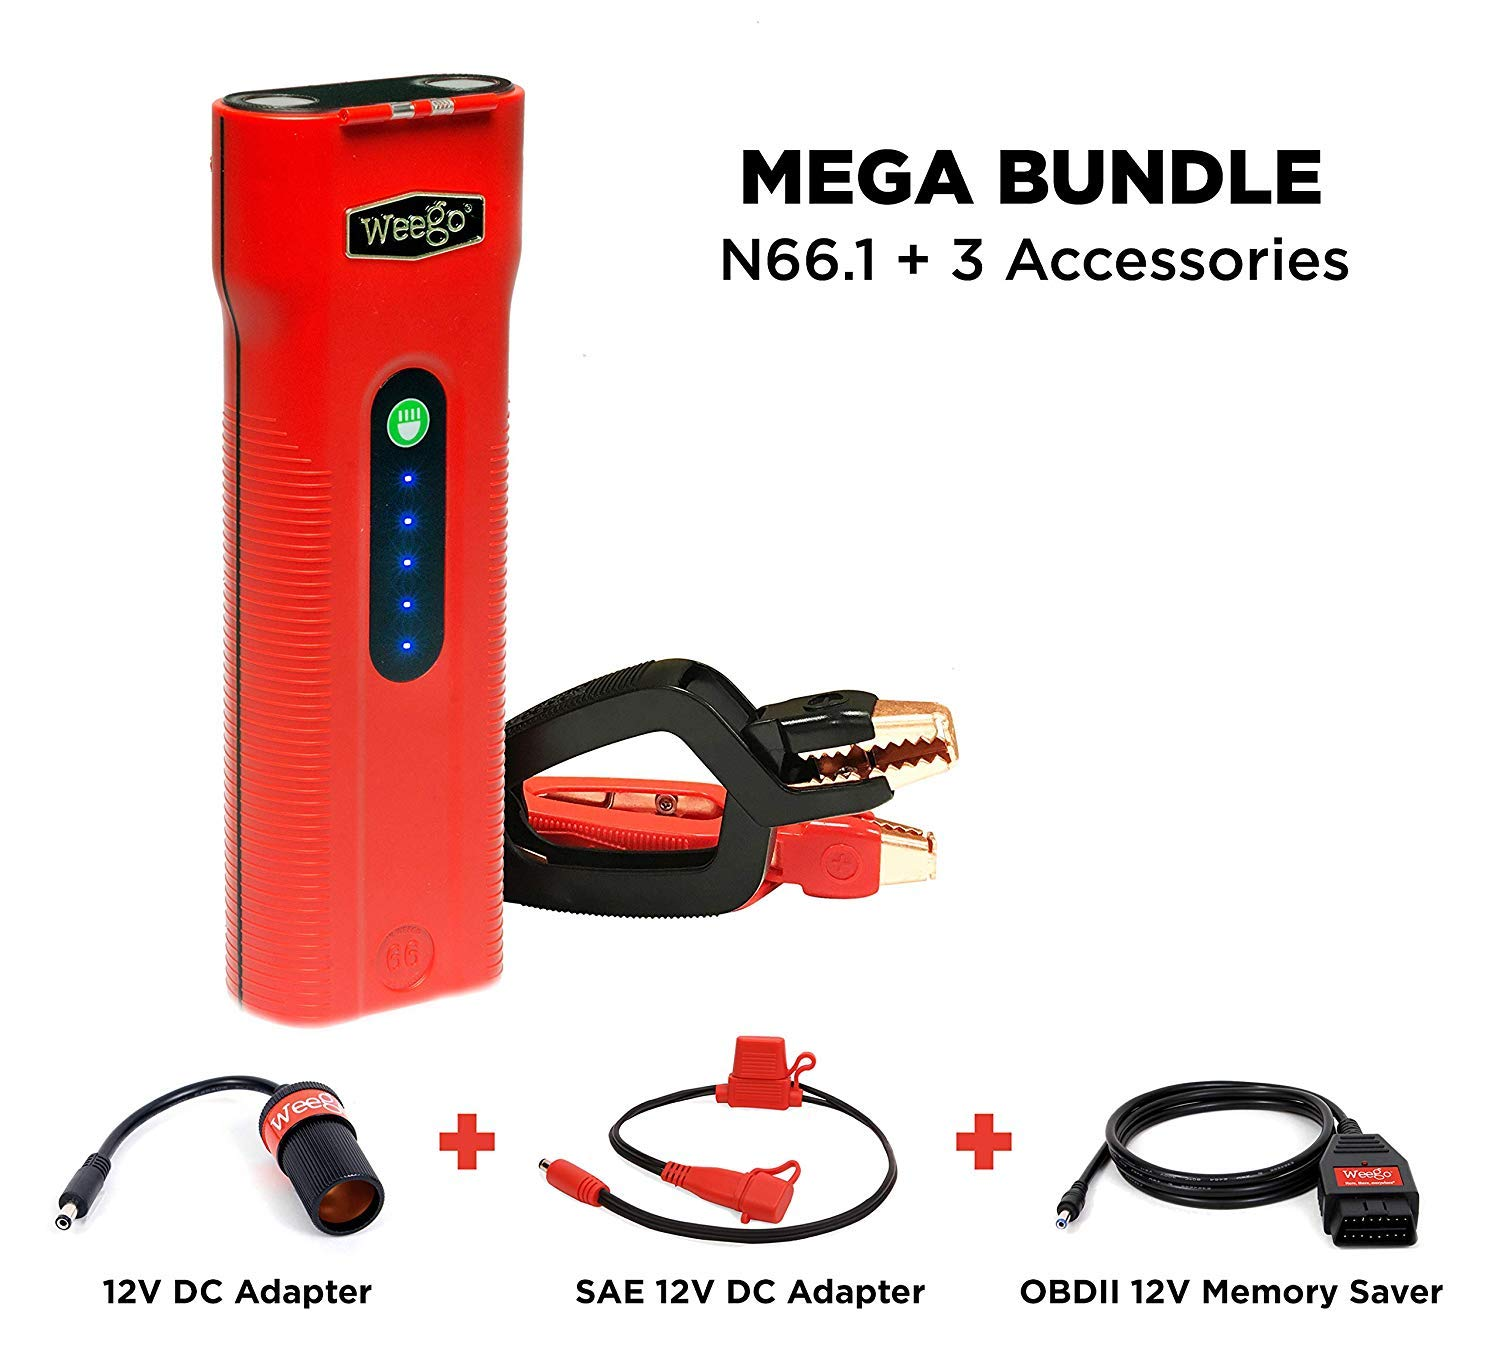 Weego 66.1 Jump Starting Power Pack MEGA BUNDLE includes Weego 66.1 High Performance Lithium Ion Jump Starter (New 2019 Model) plus Weego 12V DC Adapter, Weego SAE Adapter and Weego OBDII Memory Saver by Weego (Image #1)